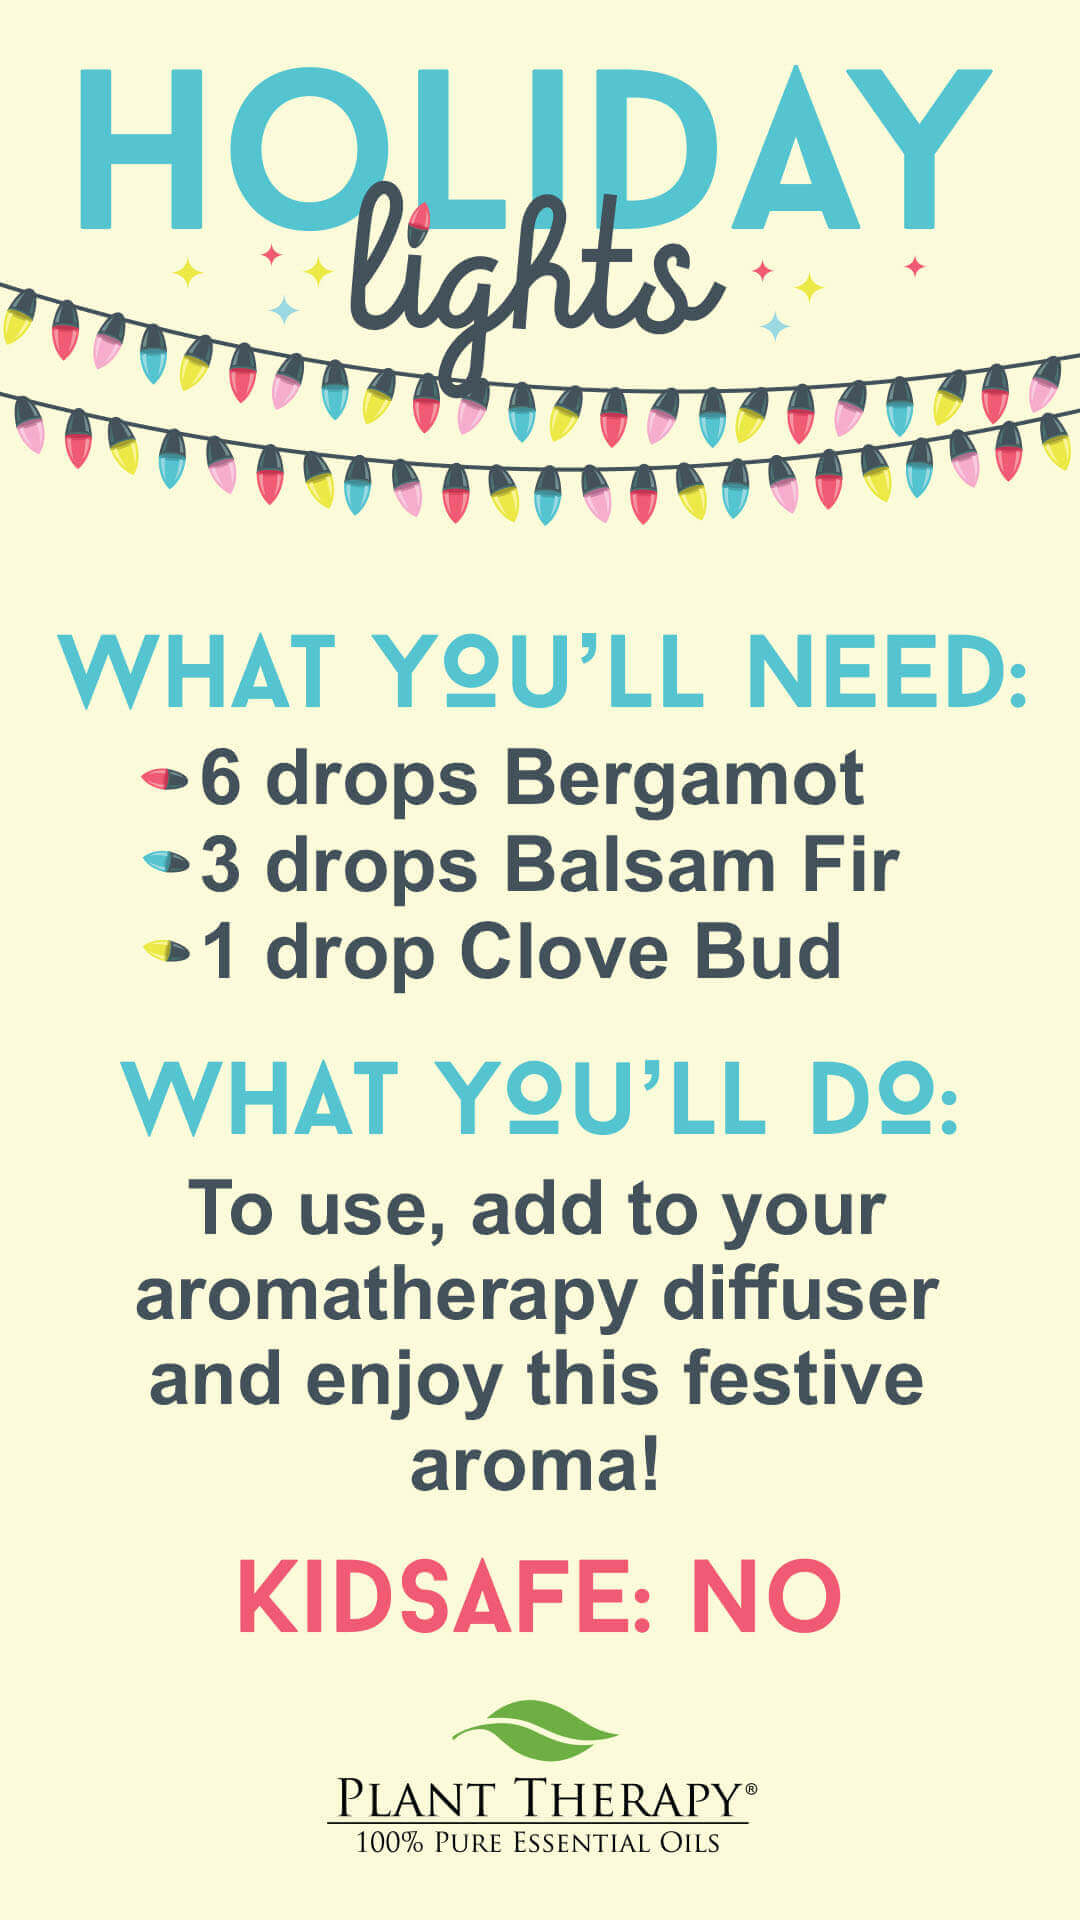 Plant Therapy Holiday Lights DIY Diffuser blend